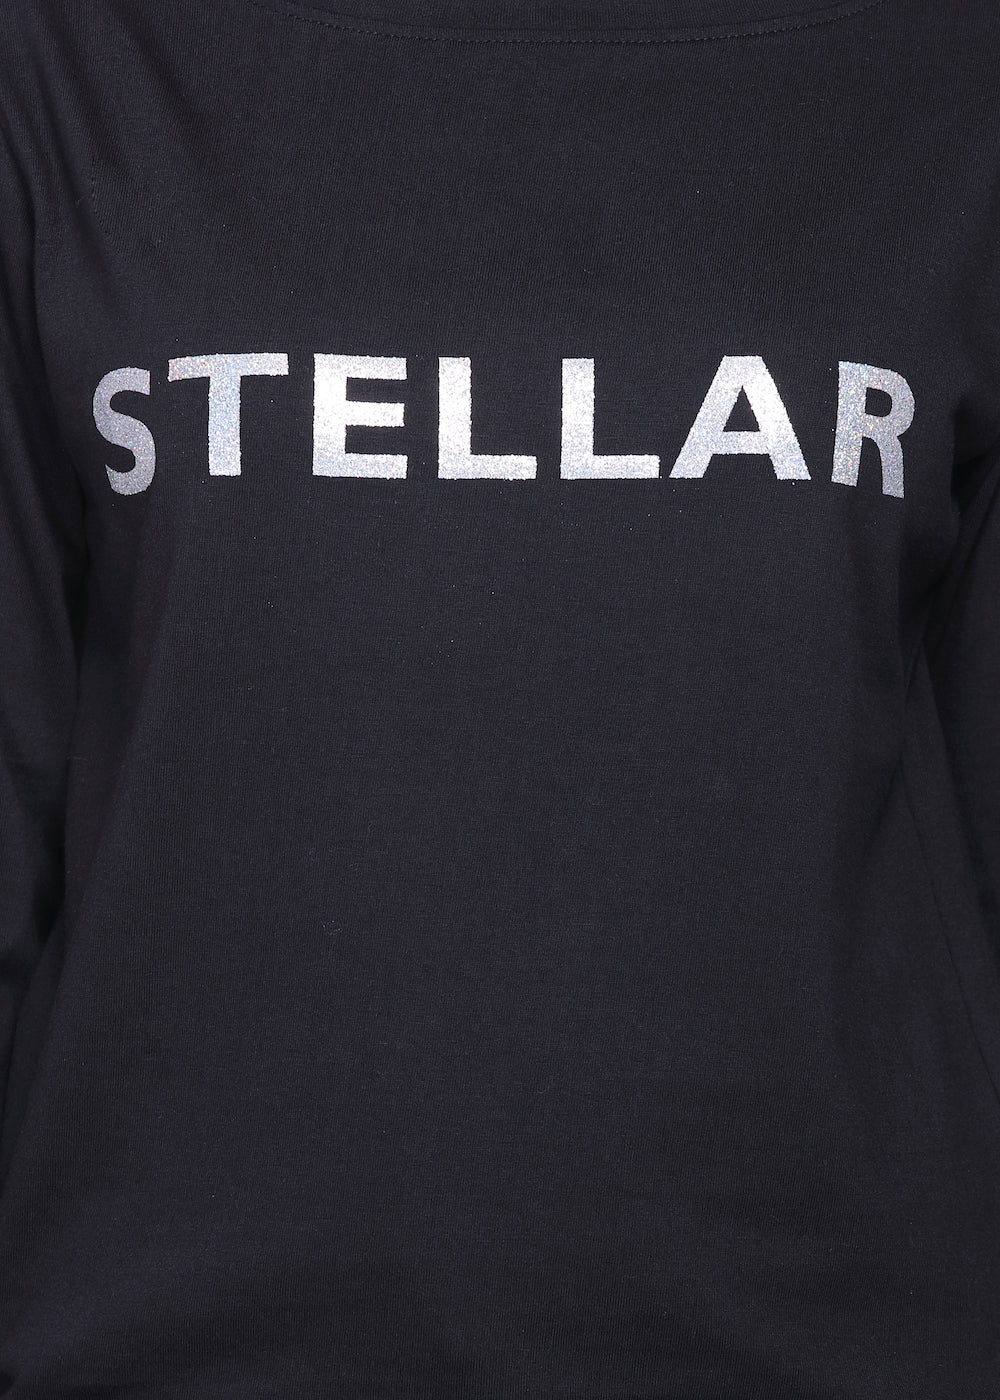 Black Long Tee , Stellar Print in Silver - GENZEE